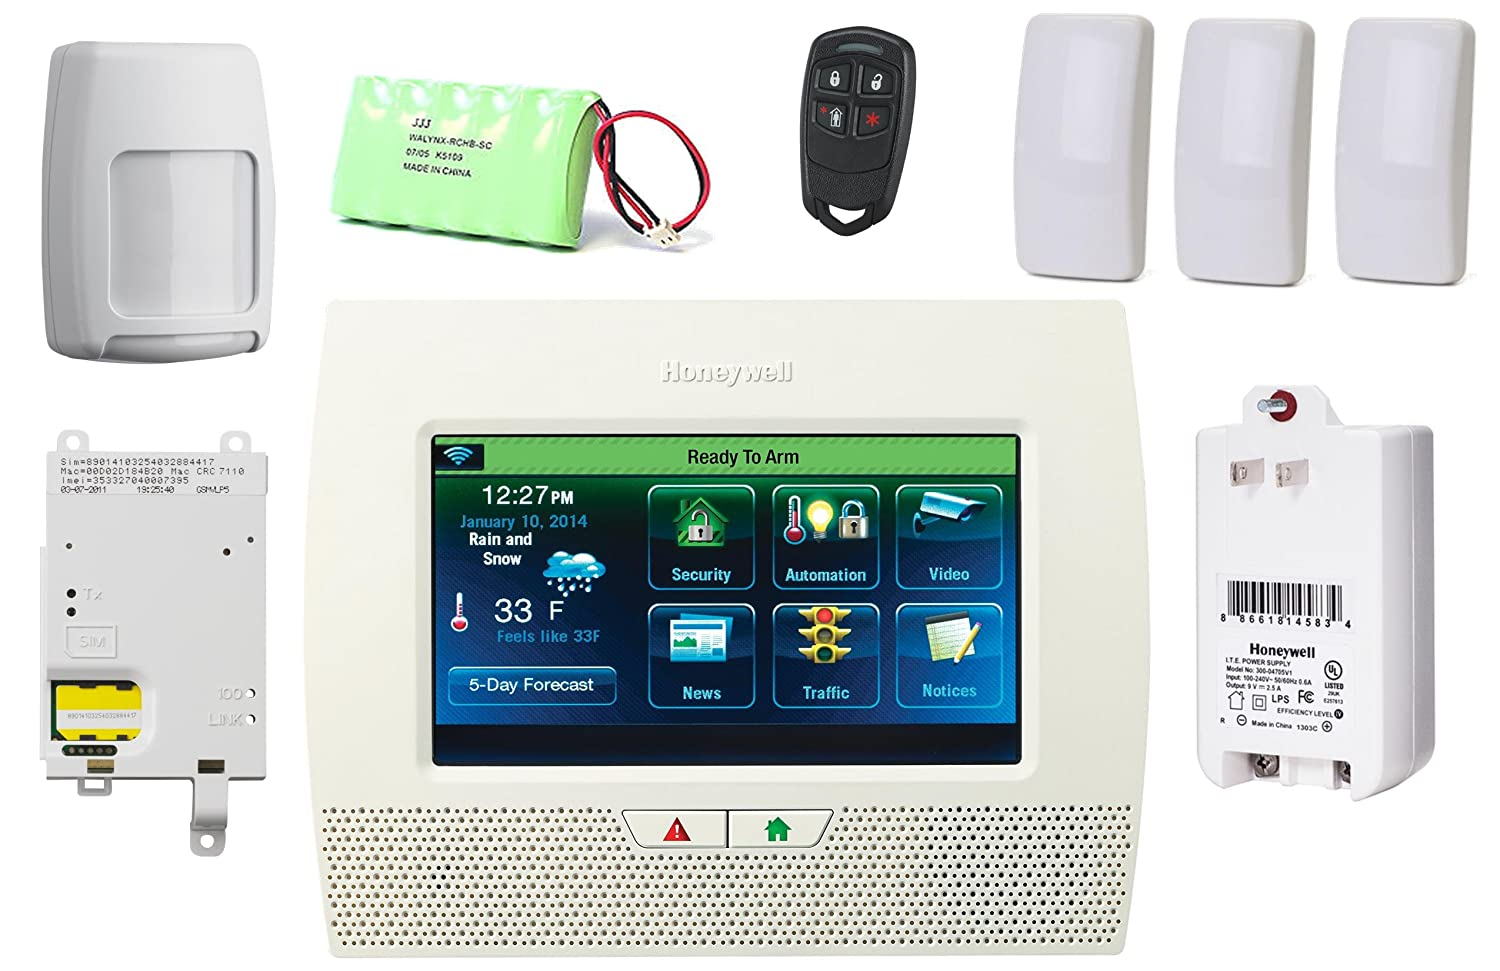 Amazon.com : Honeywell Lynx Touch L7000 Wireless Security ...